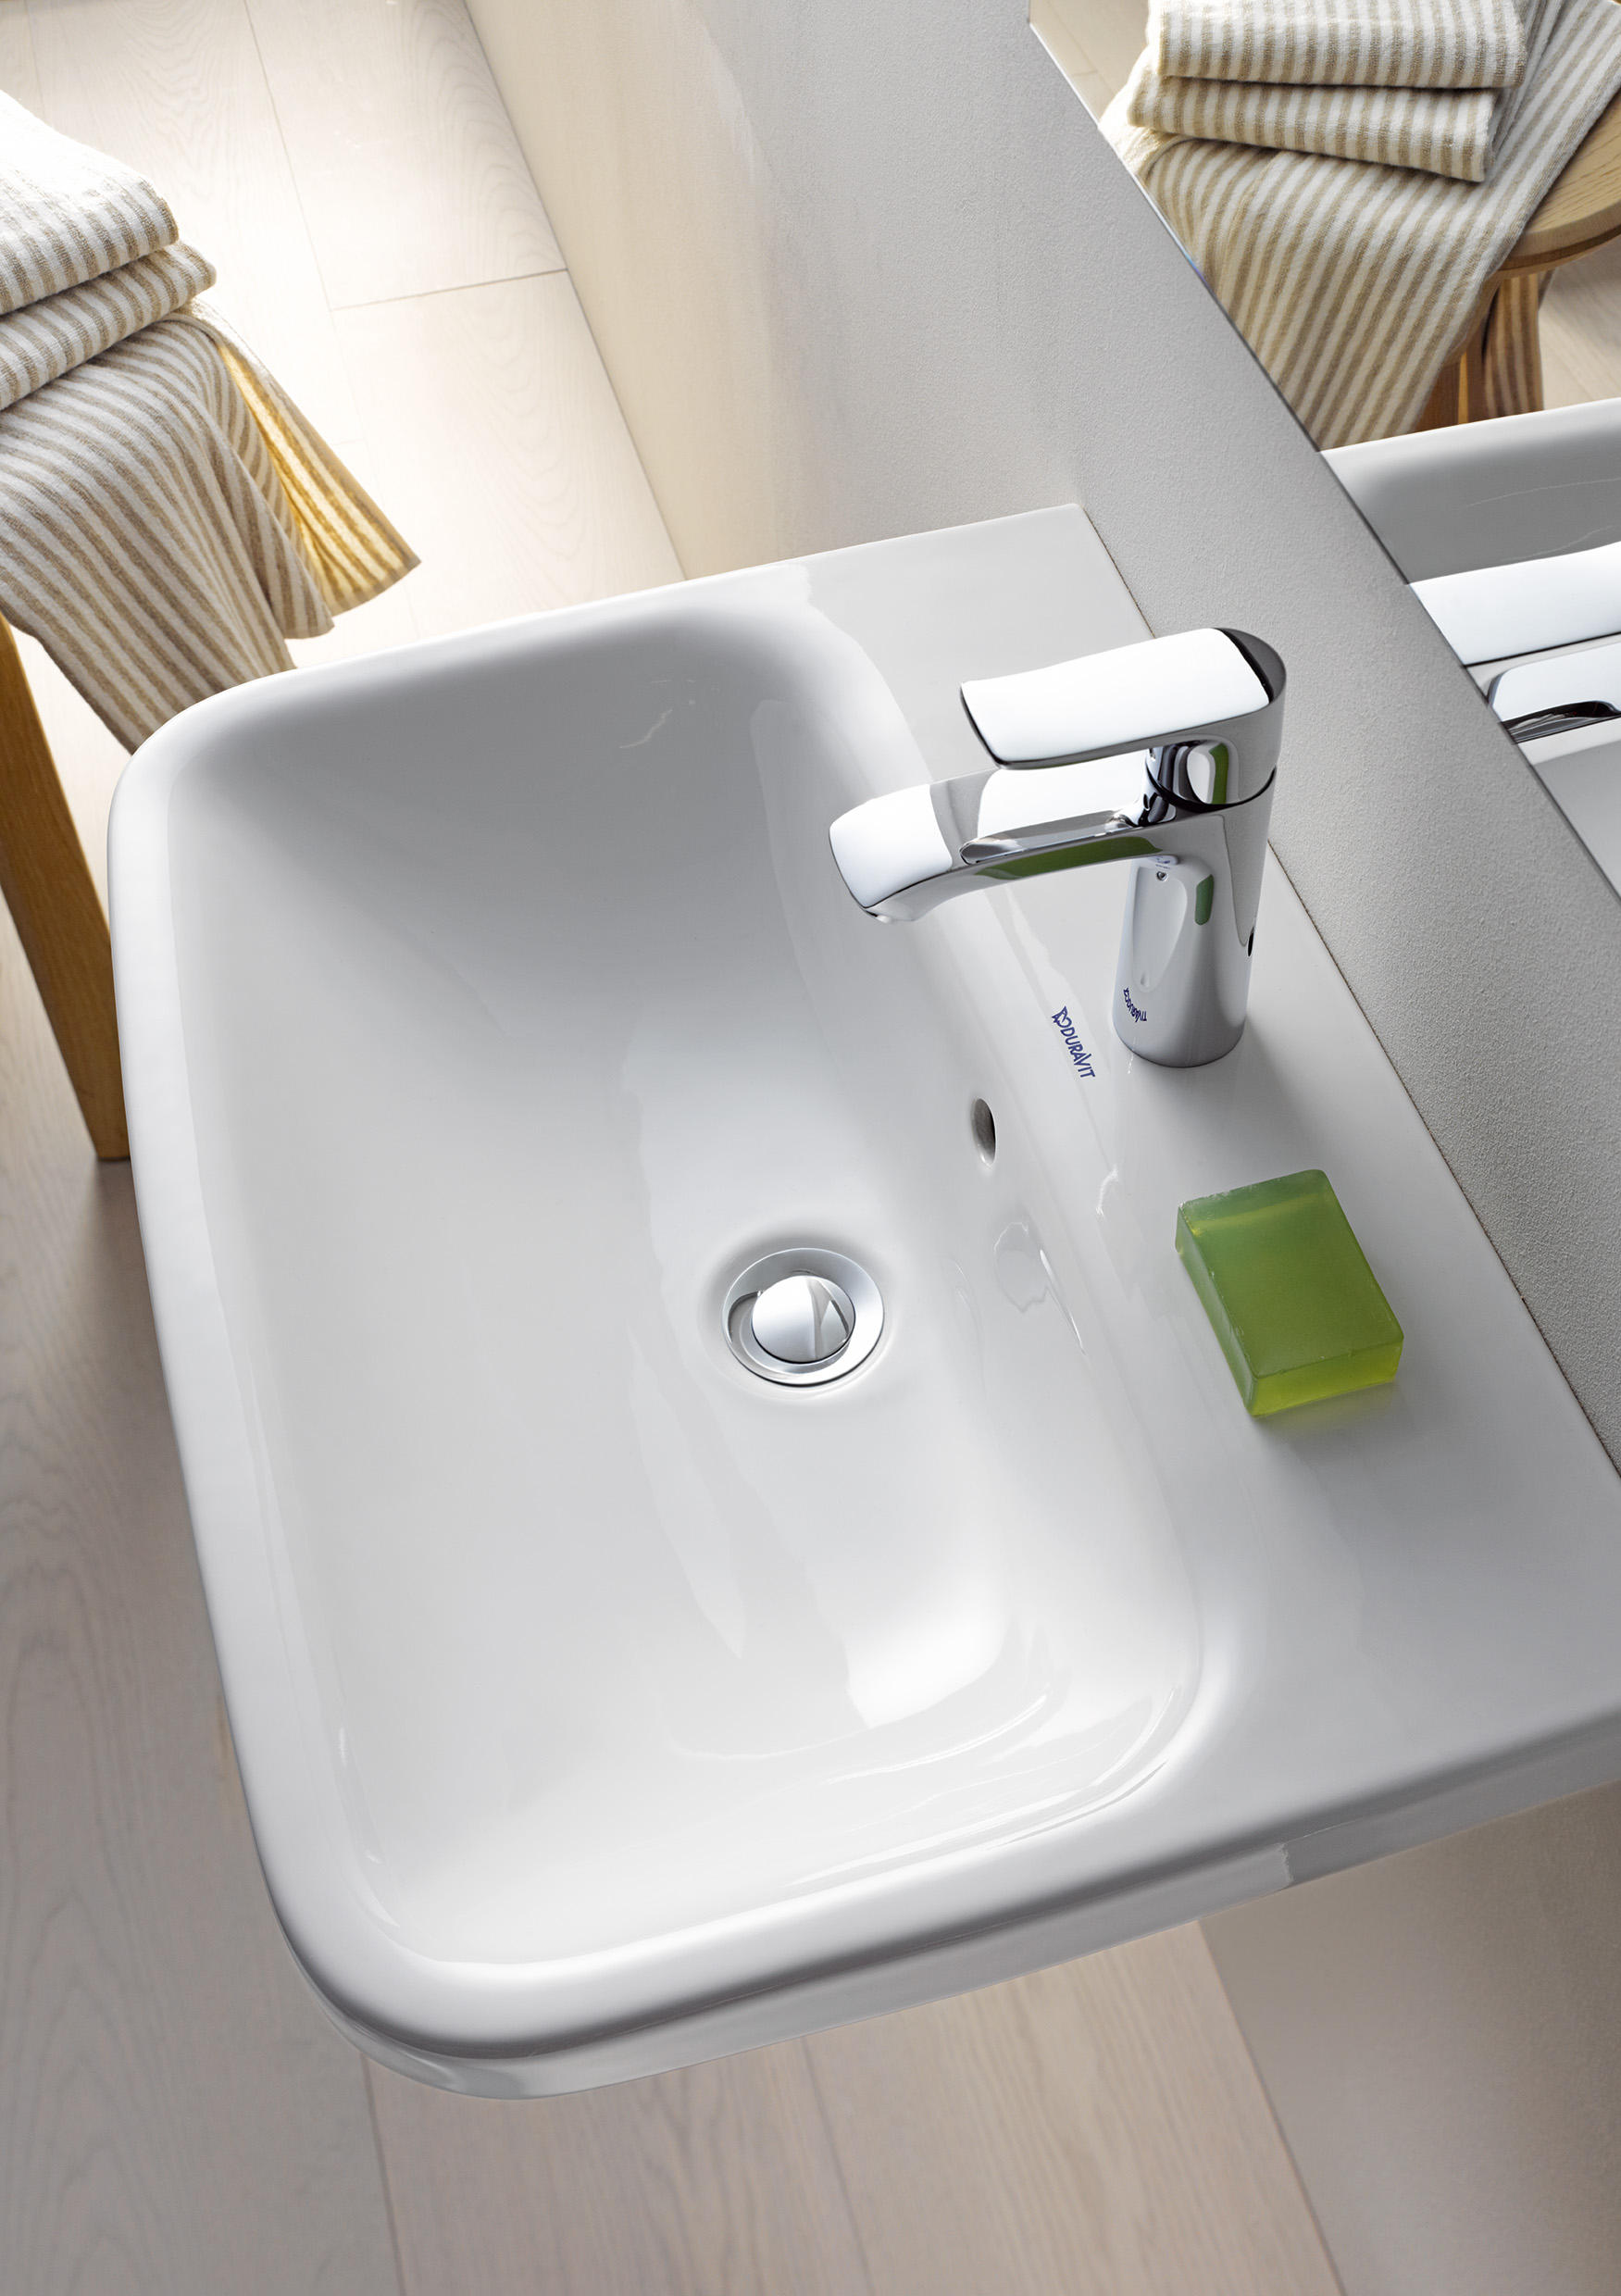 DURASTYLE ABOVE COUNTER BASIN Wash Basins From DURAVIT Architonic